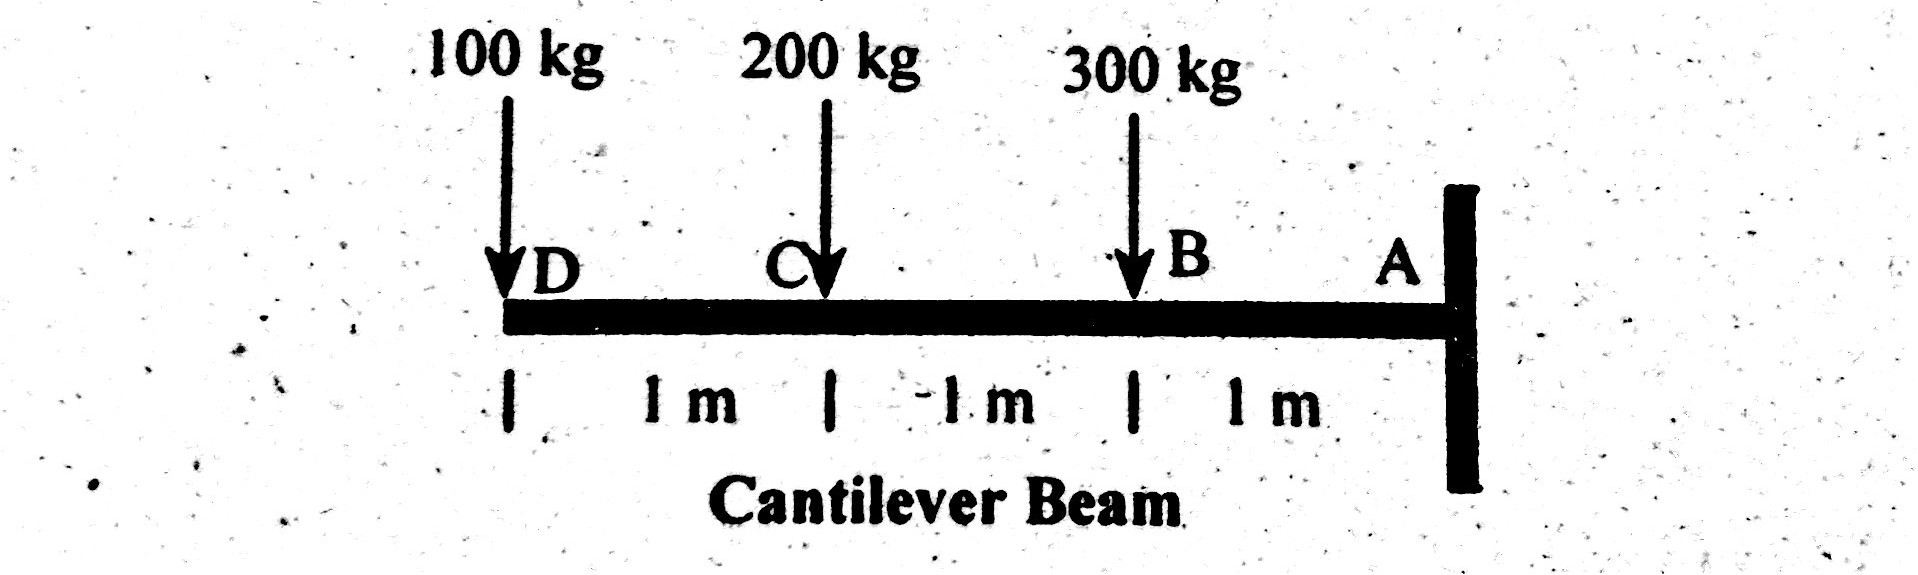 hight resolution of cantilever beam shear force diagram bending moment diagram